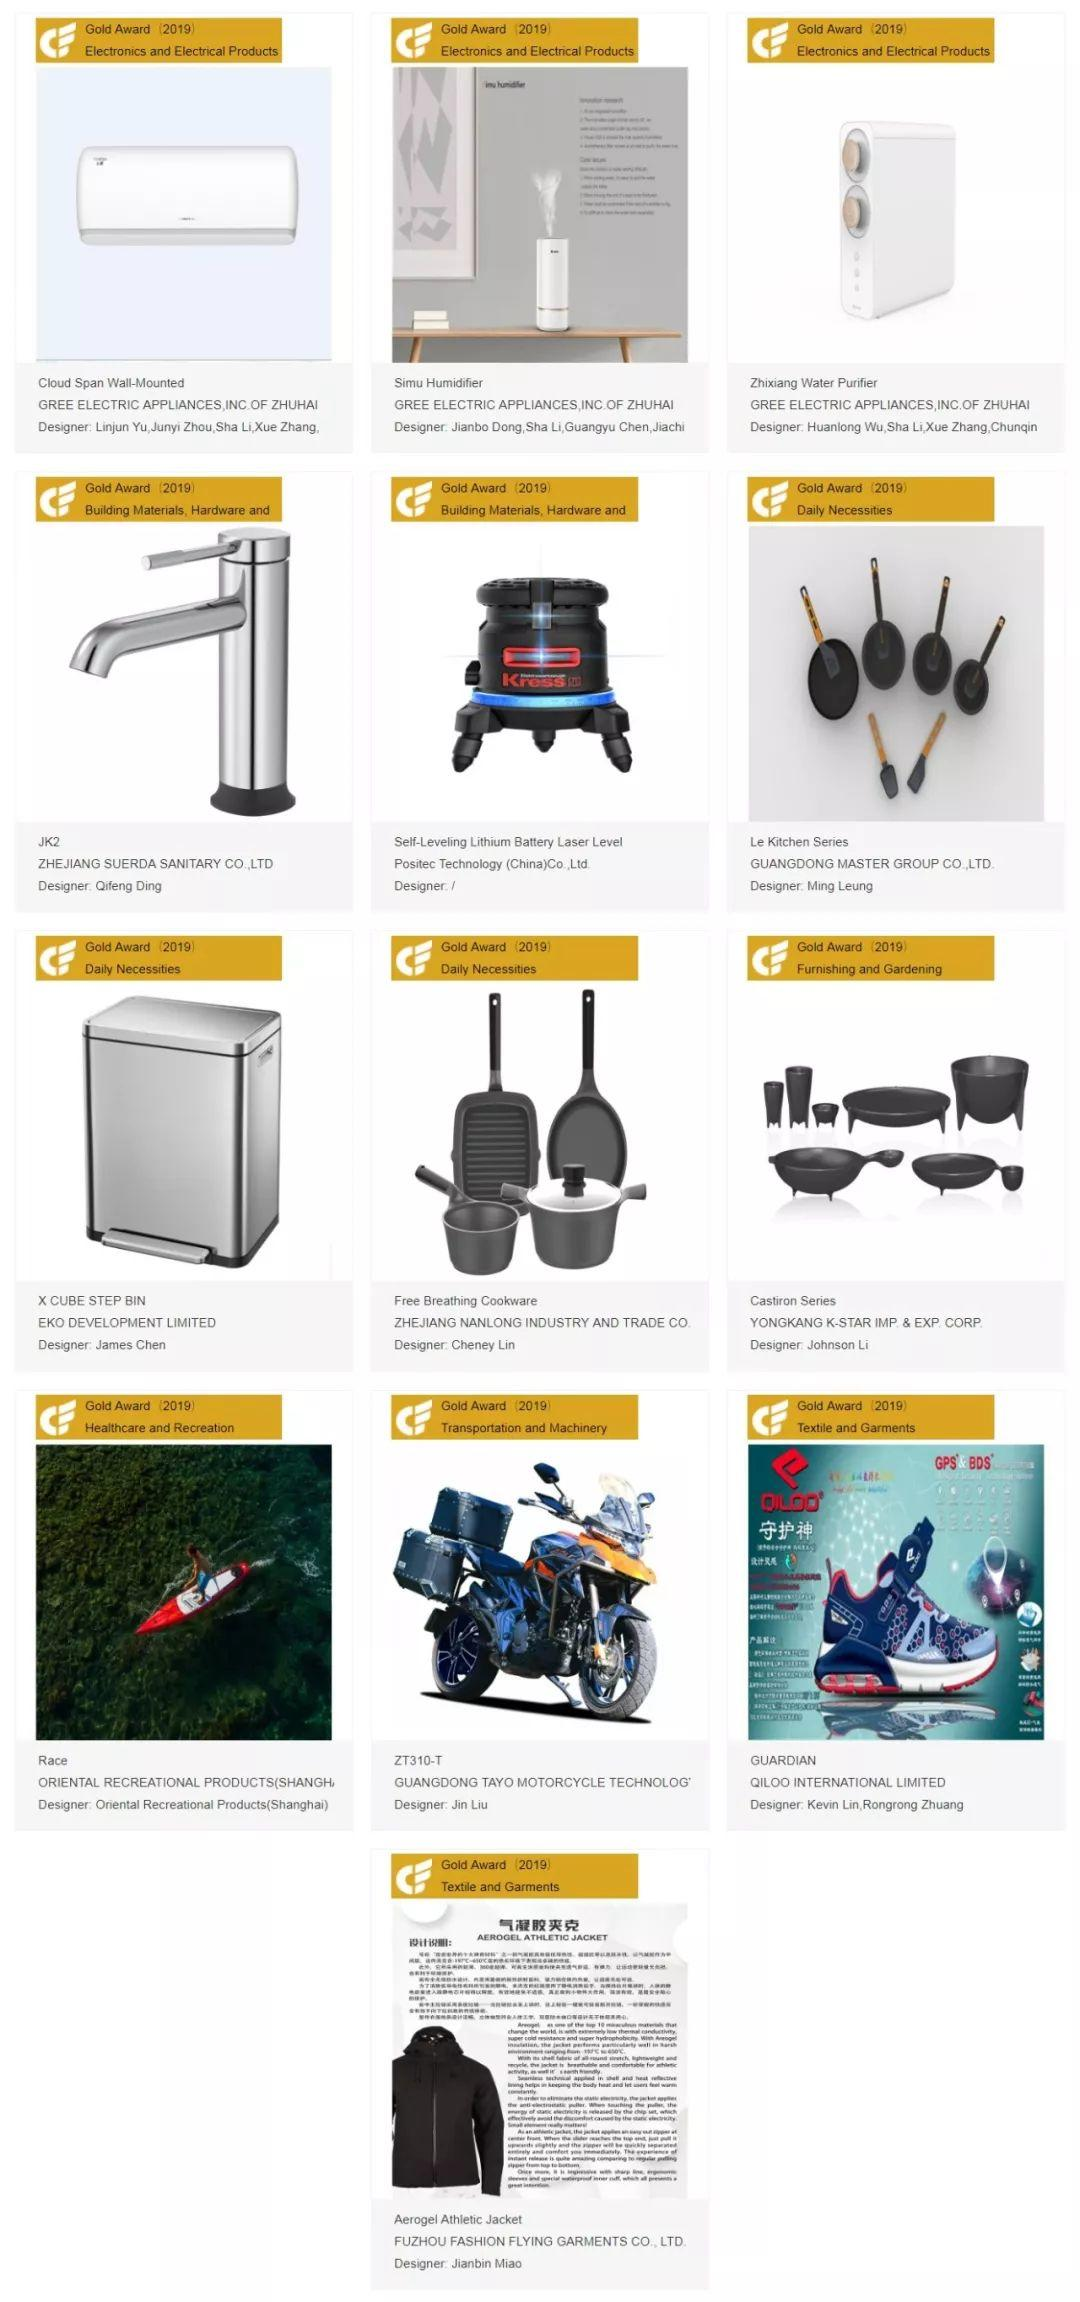 What's the Best Product to Buy in Canton Fair?